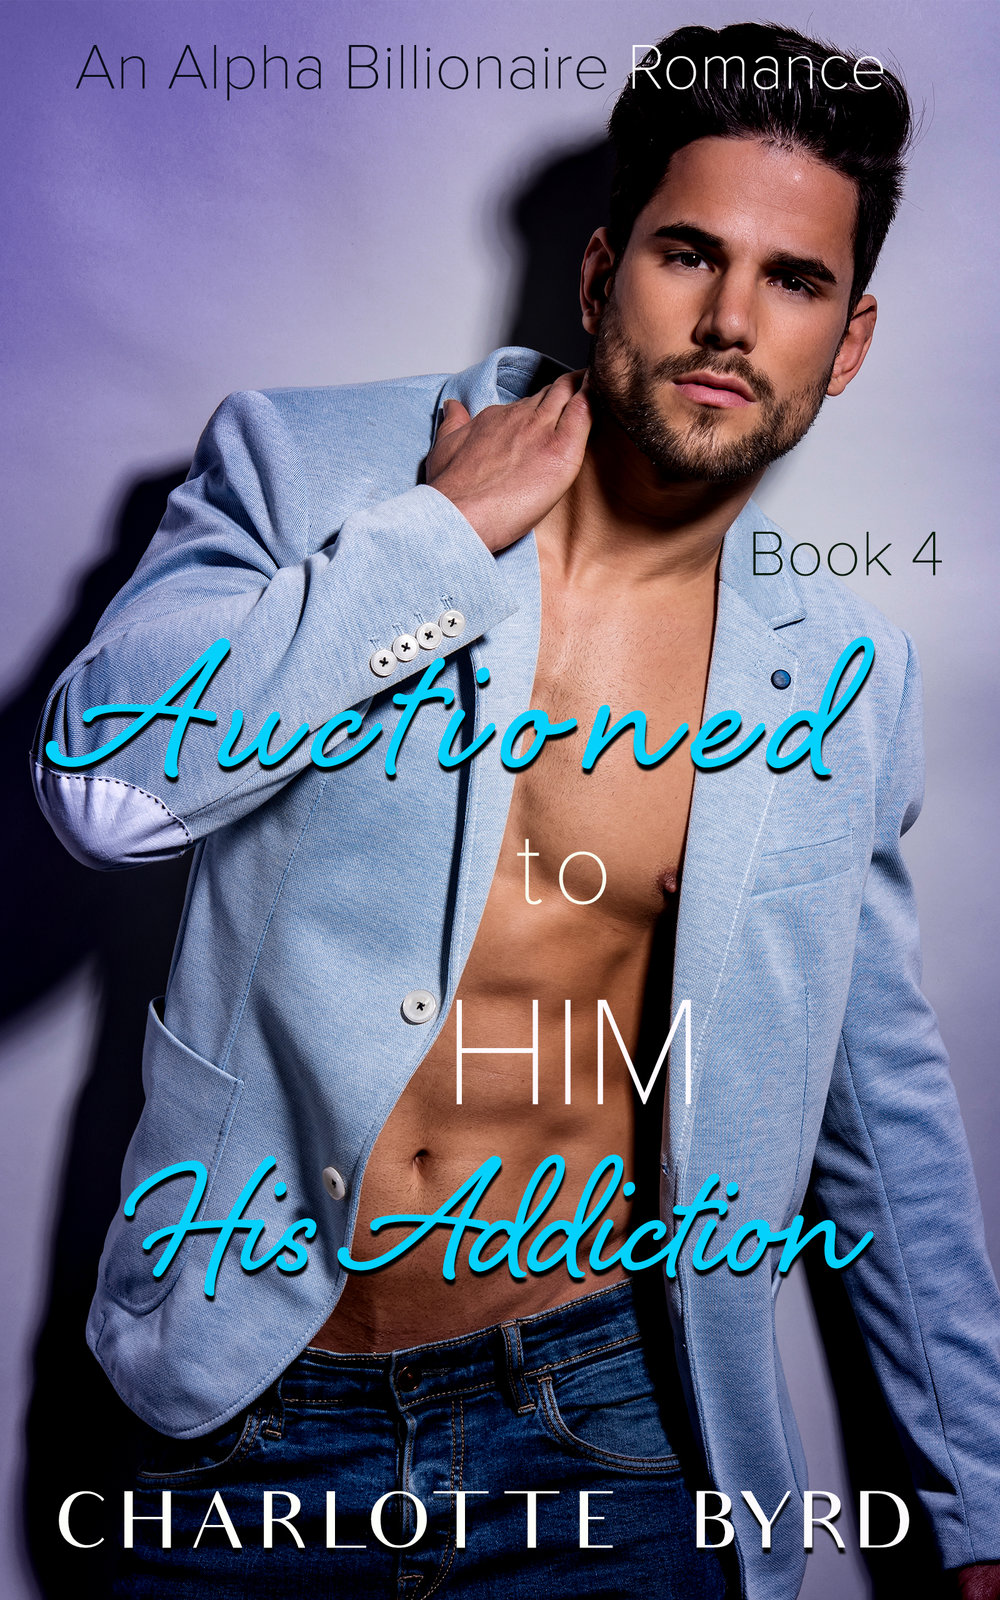 FREE on Kindle Unlimited! - Book 4 in the Bestselling series - includes Book 1 as a BONUS!The hotly anticipated fourth book continues the sensual saga of Ellie and Aiden.Aiden Black is beautiful and flawless and tormented and damaged. I'm a good girl who never thought that she would fall for a man who would buy her at an auction.But what started out as a relationship of pure lust has evolved into something more...love. The more I fall in love with him, the more I crave him. I can't stay away. And now that his business is falling apart, he needs me more than ever. When I see the opportunity to help him, I have to take it...WARNING: This is a HOT, modern-day, dark erotic romance with a bad boy alpha billionaire for fans of EL James, Kira Blakely, and Pepper Winters. It contains light bondage, NO CHEATING, No Cliffhanger and a Happily Ever After, for now.*For a Limited Time, this book continues FREE bonus billionaire romances!